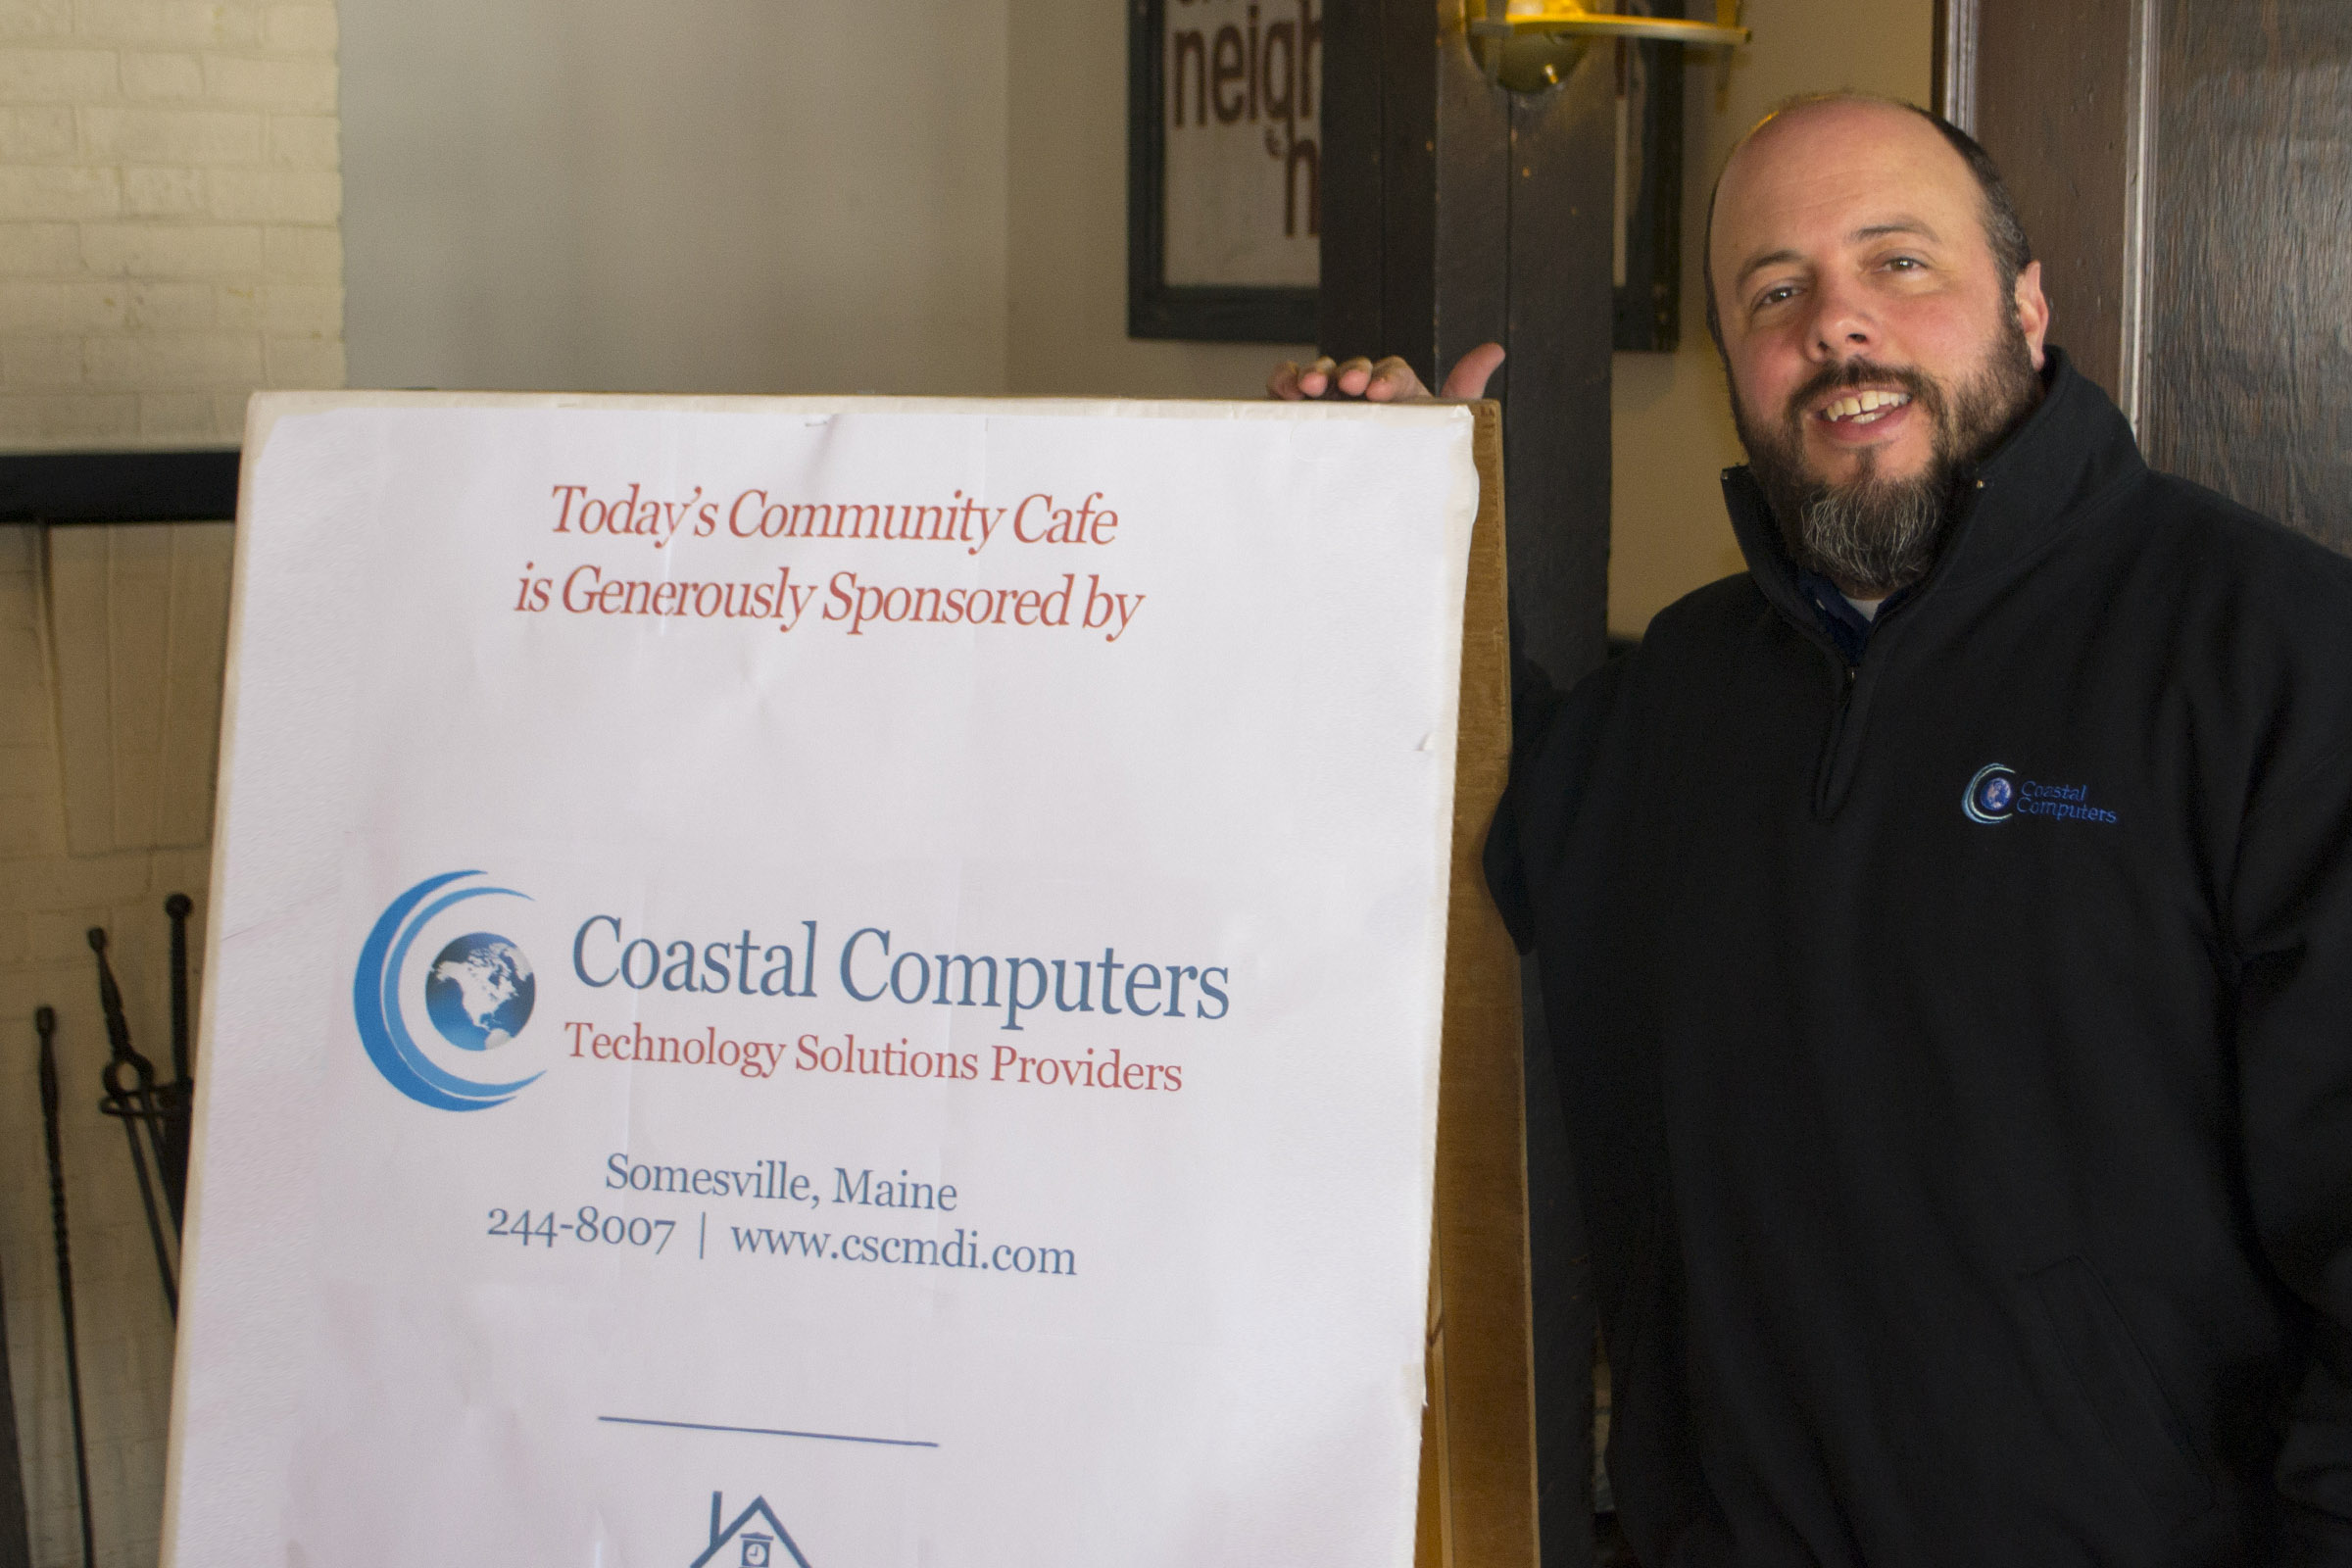 George Grohs, owner of Coastal Computers, also serves as a volunteer on The Neighborhood House's Board of Directors.